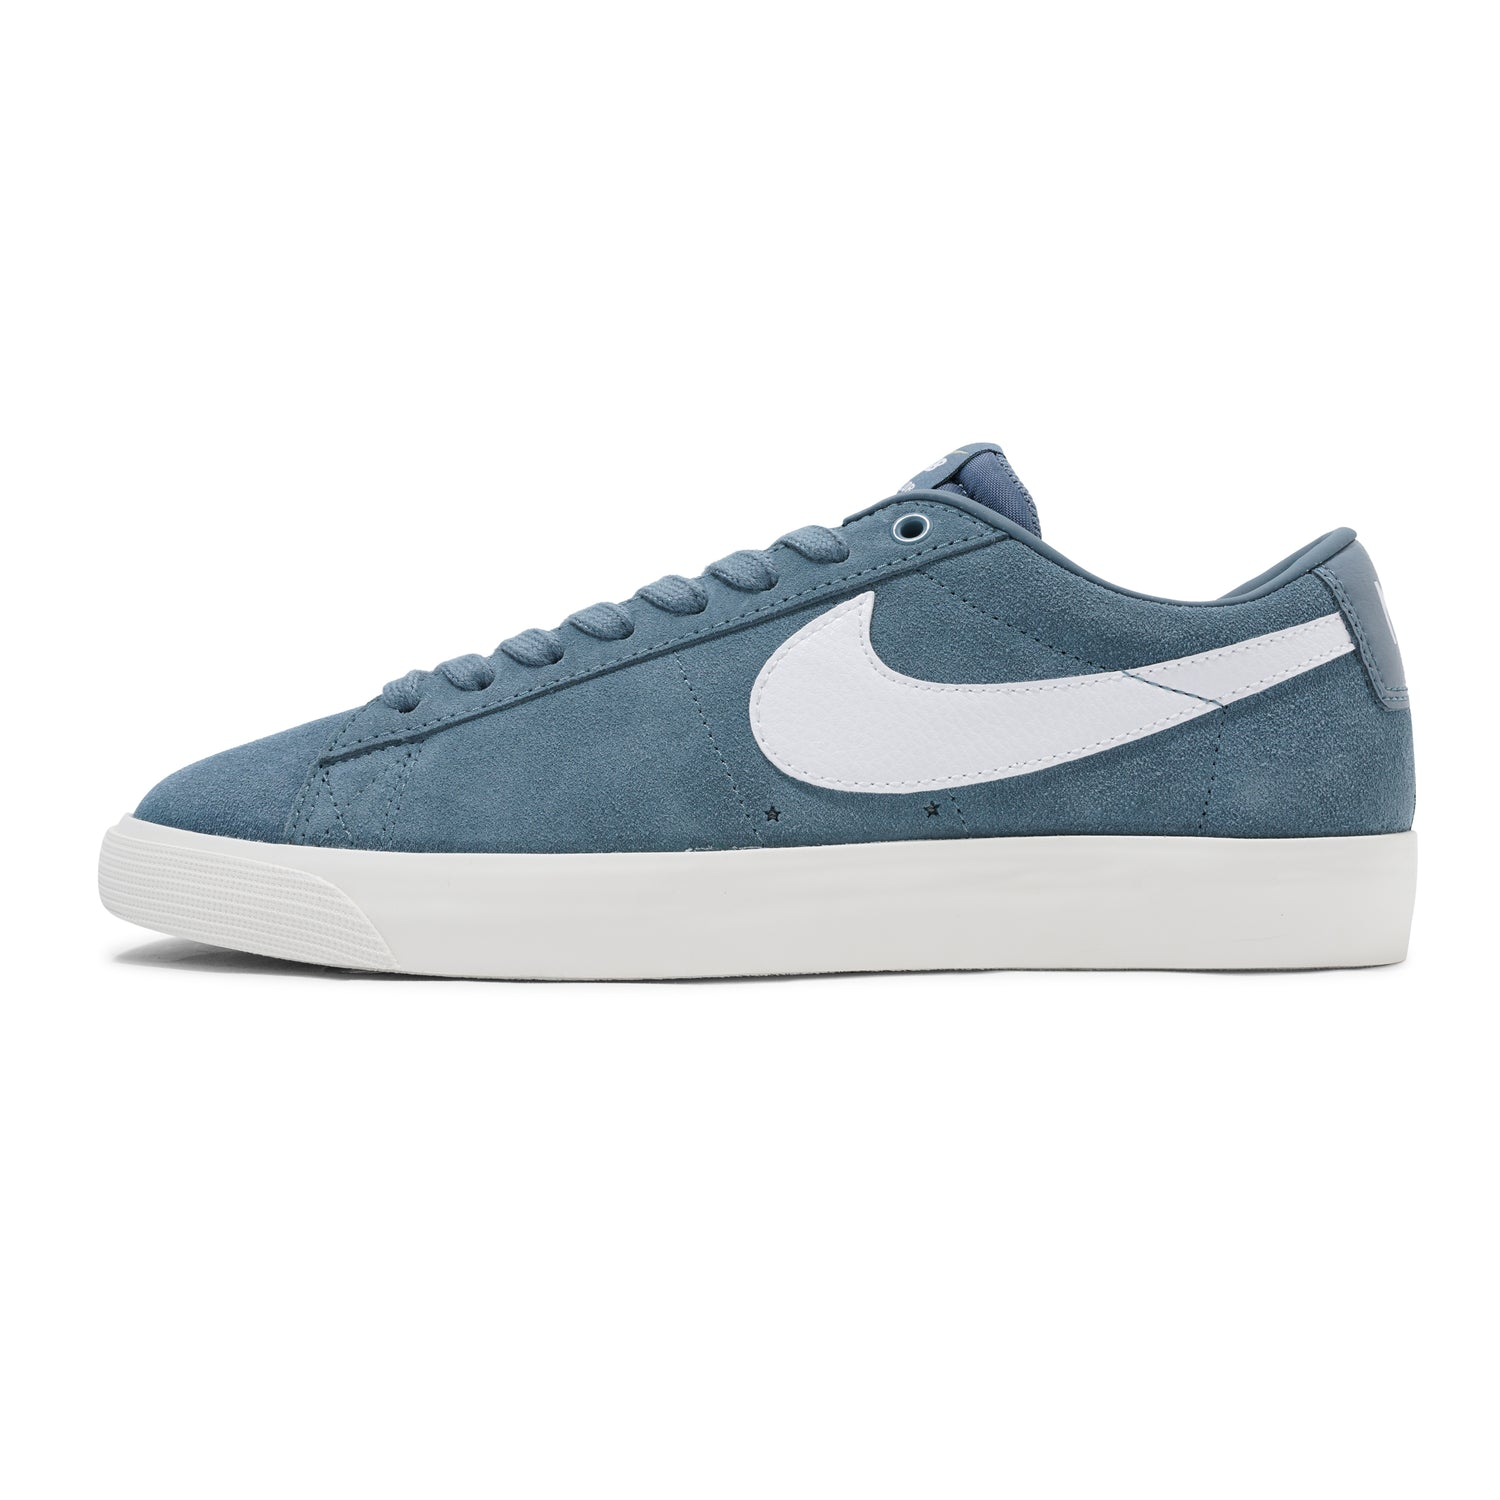 Blazer Low GT, Ozone Blue / White